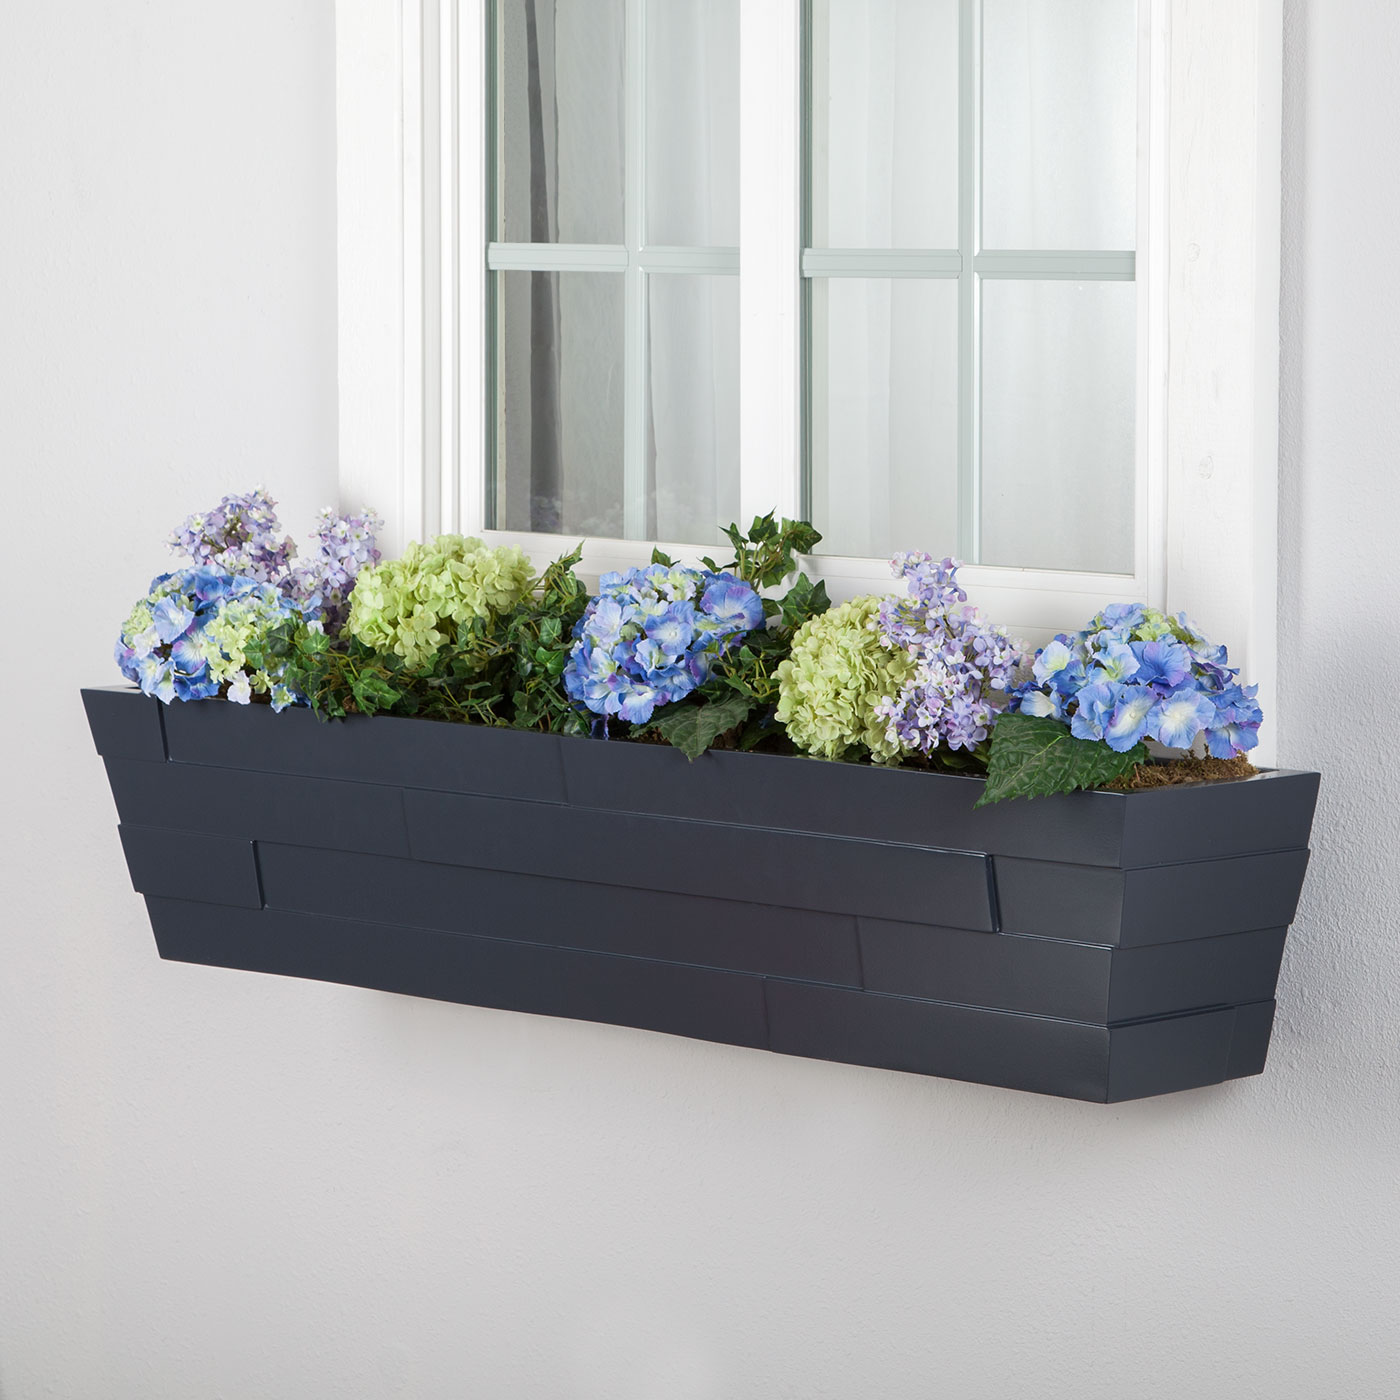 dimensional modern window boxes for homes  hooks  lattice - charcoal brickton fiberglass window boxes click to enlarge